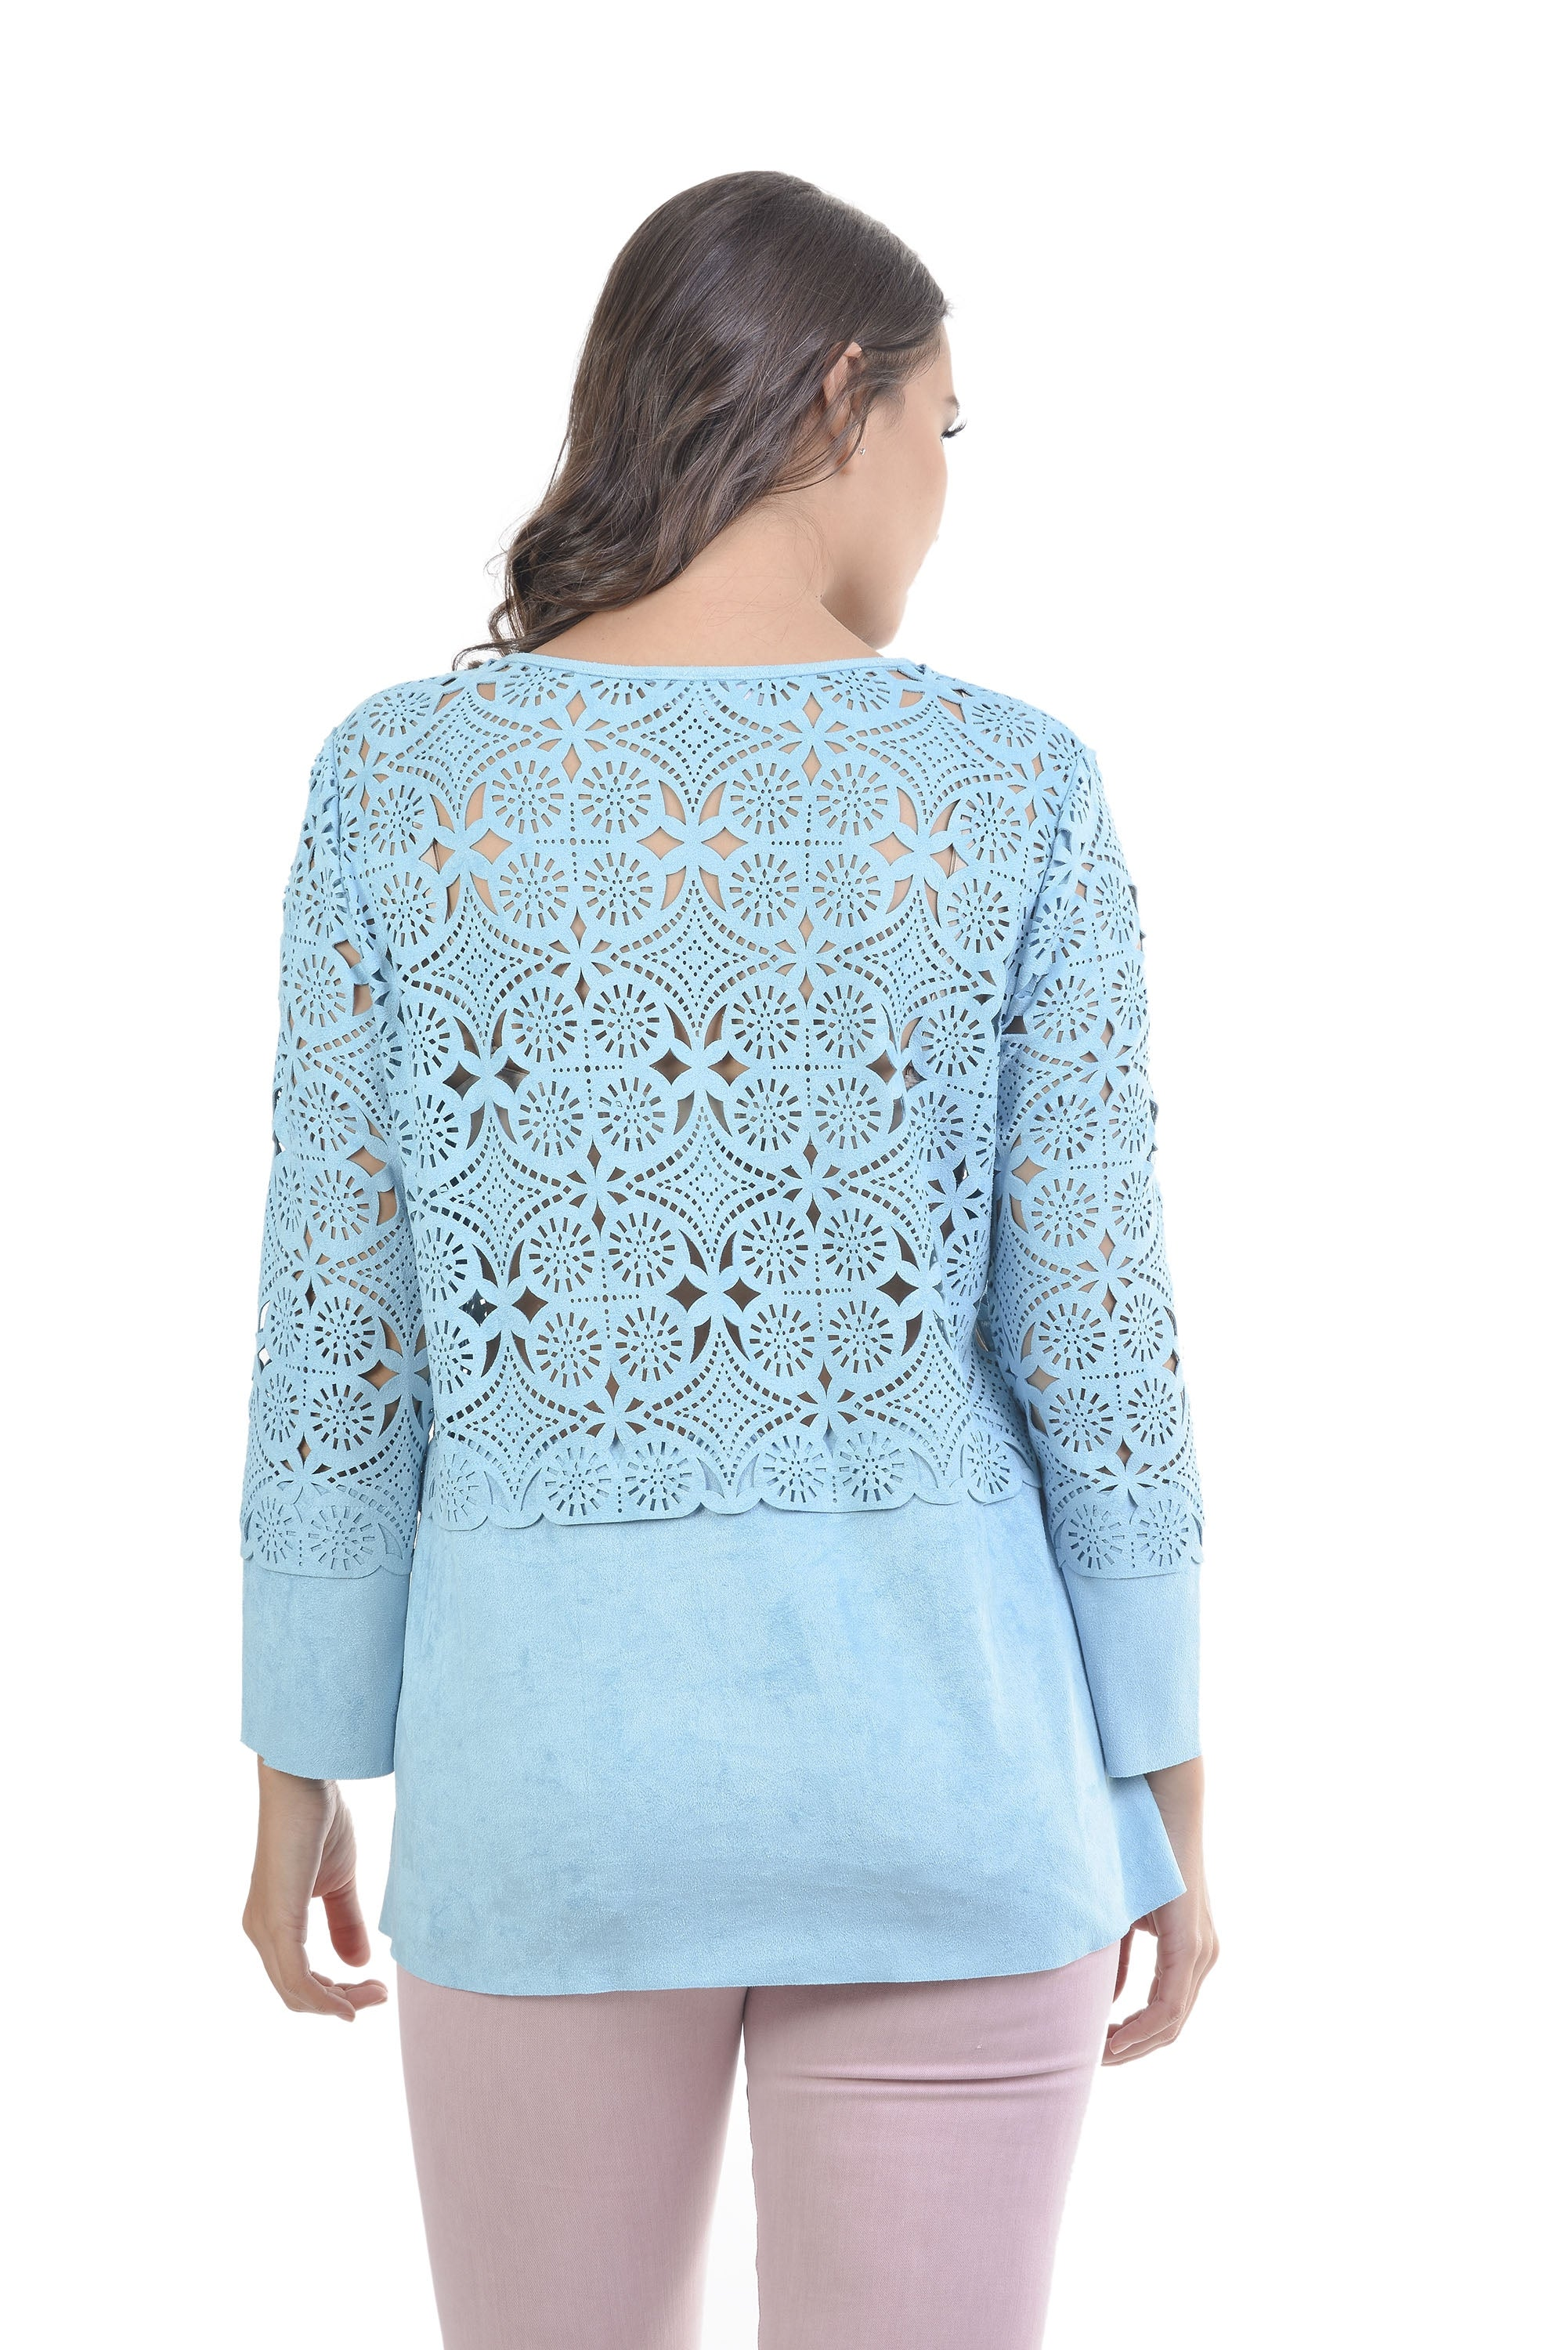 BLUSA TENDERE